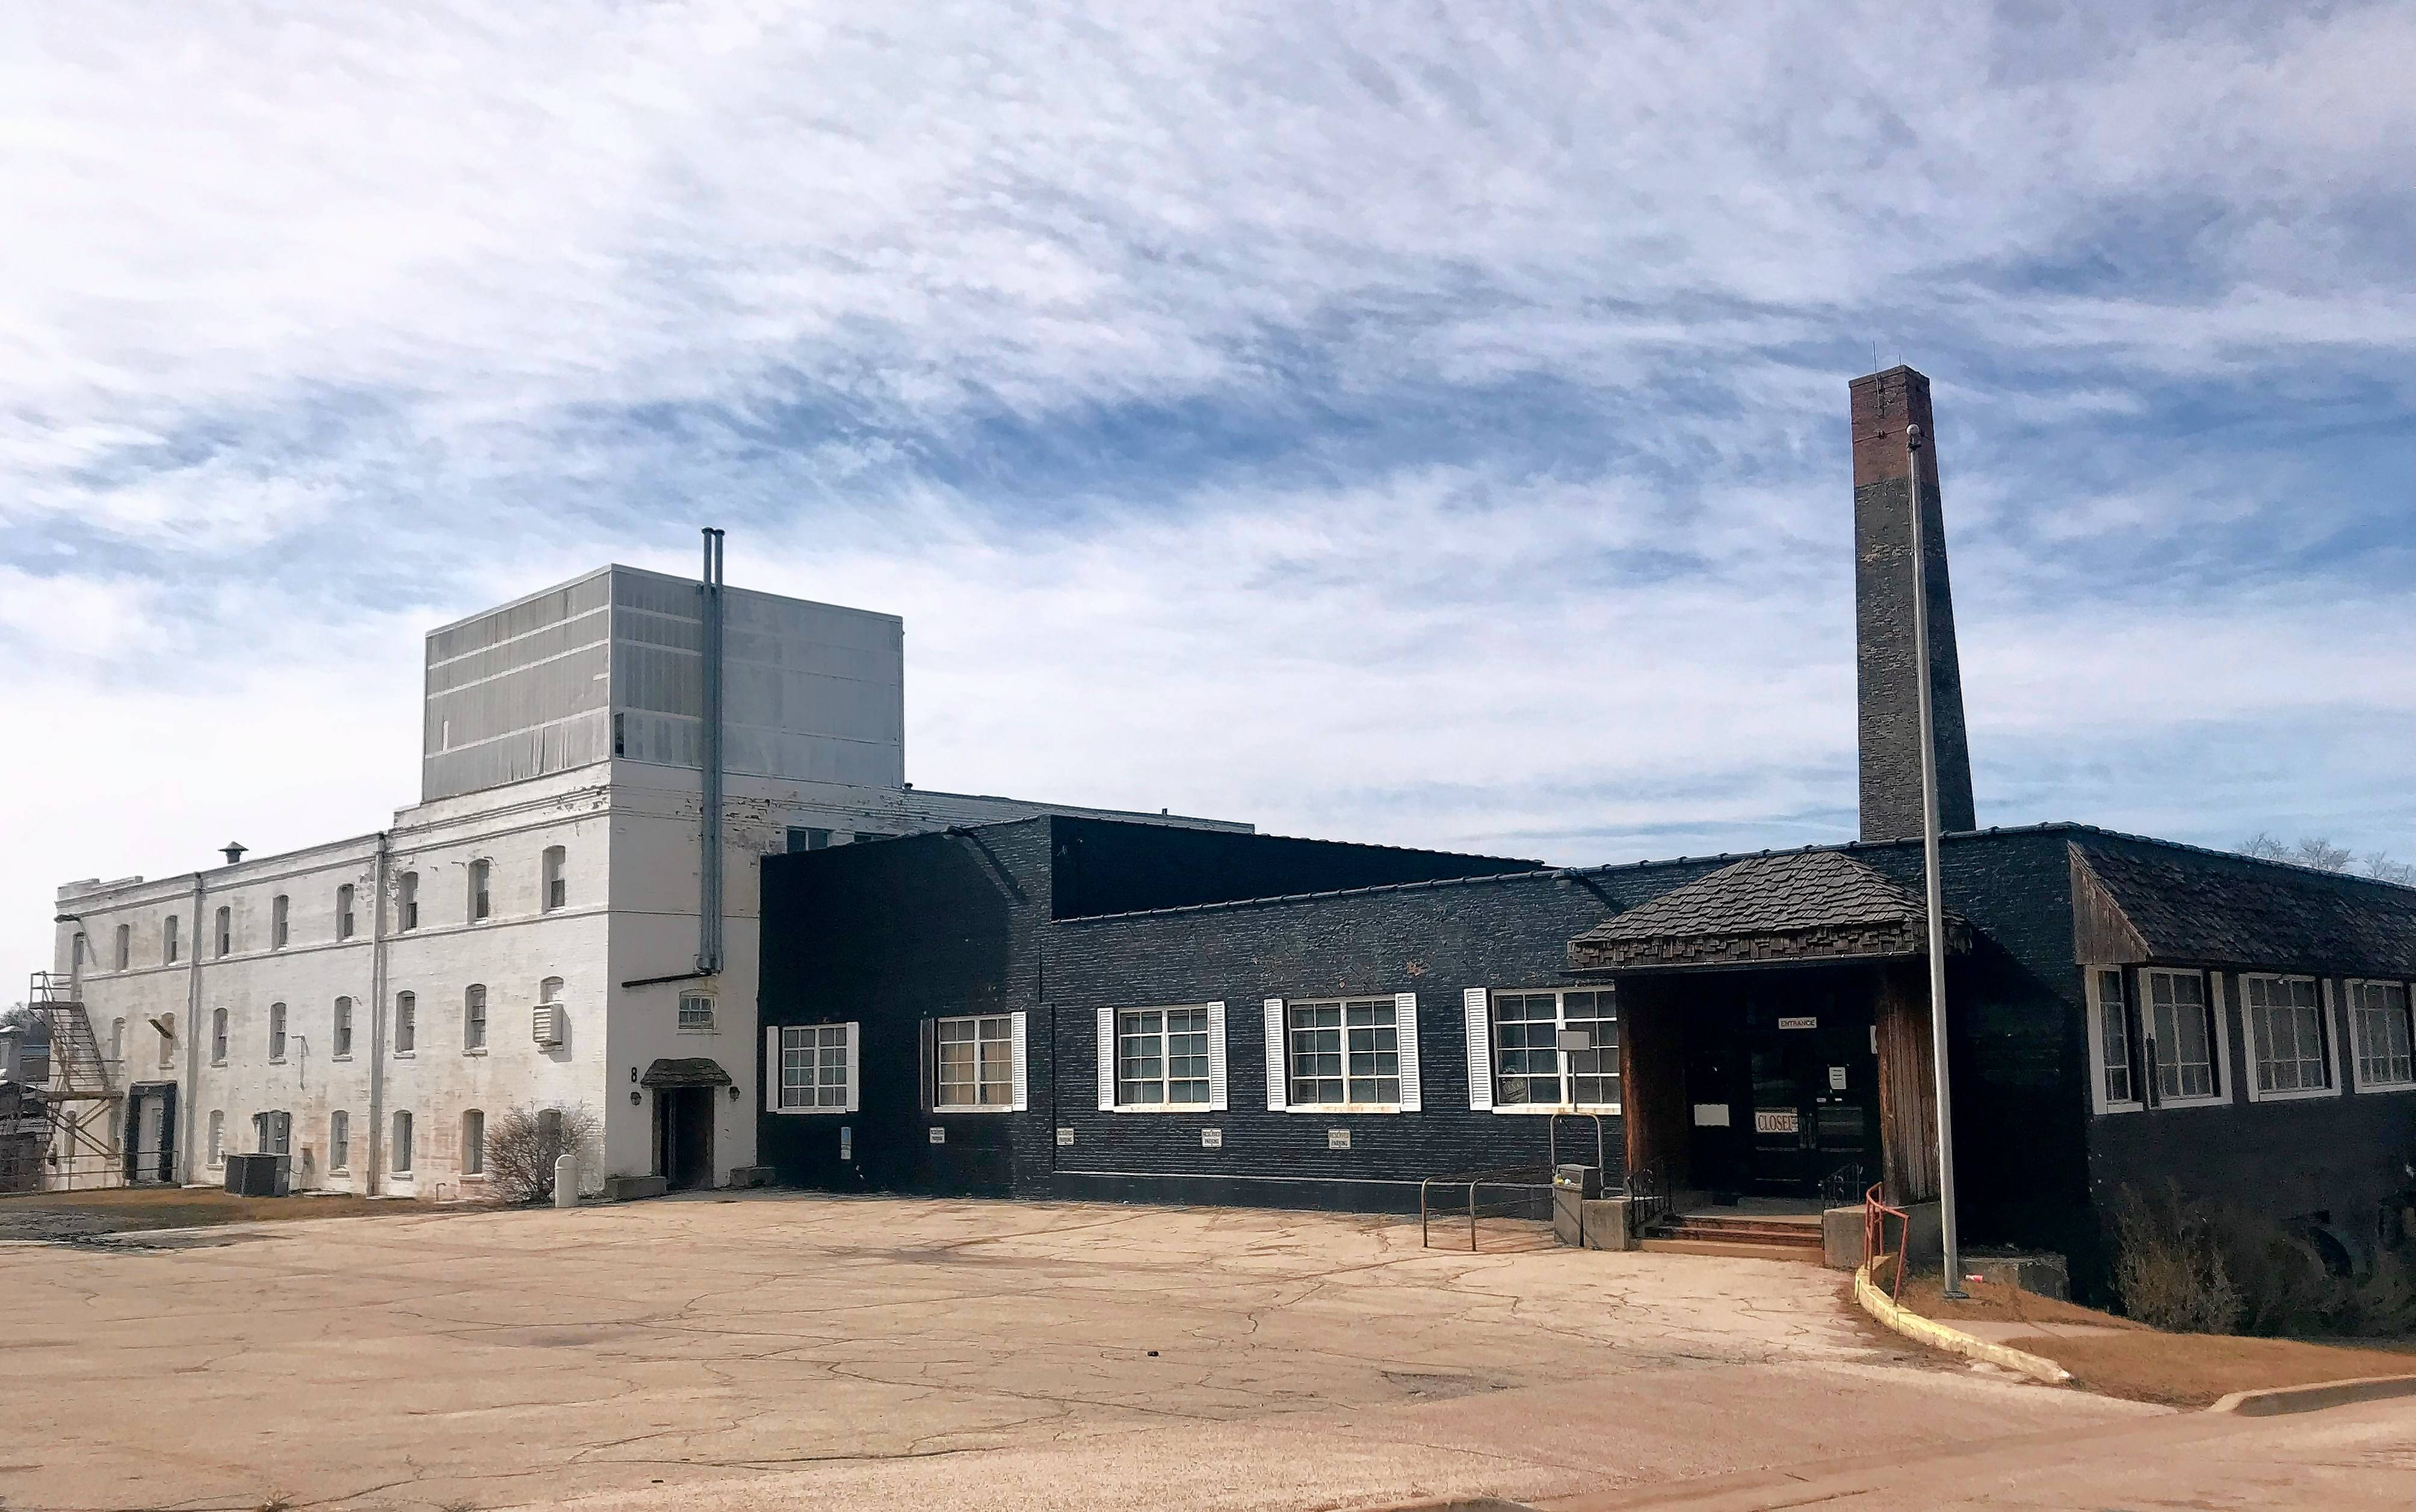 The Illinois attorney general's office and Kane County state's attorney have sued former Golden Plastics, which ceased operations in the former Haegar Pottery Building in East Dundee on Dec. 31, 2017, arguing equipment was moved without a permit, IEPA rules were broken and noxious odors were emitted on numerous occasions in 2017.